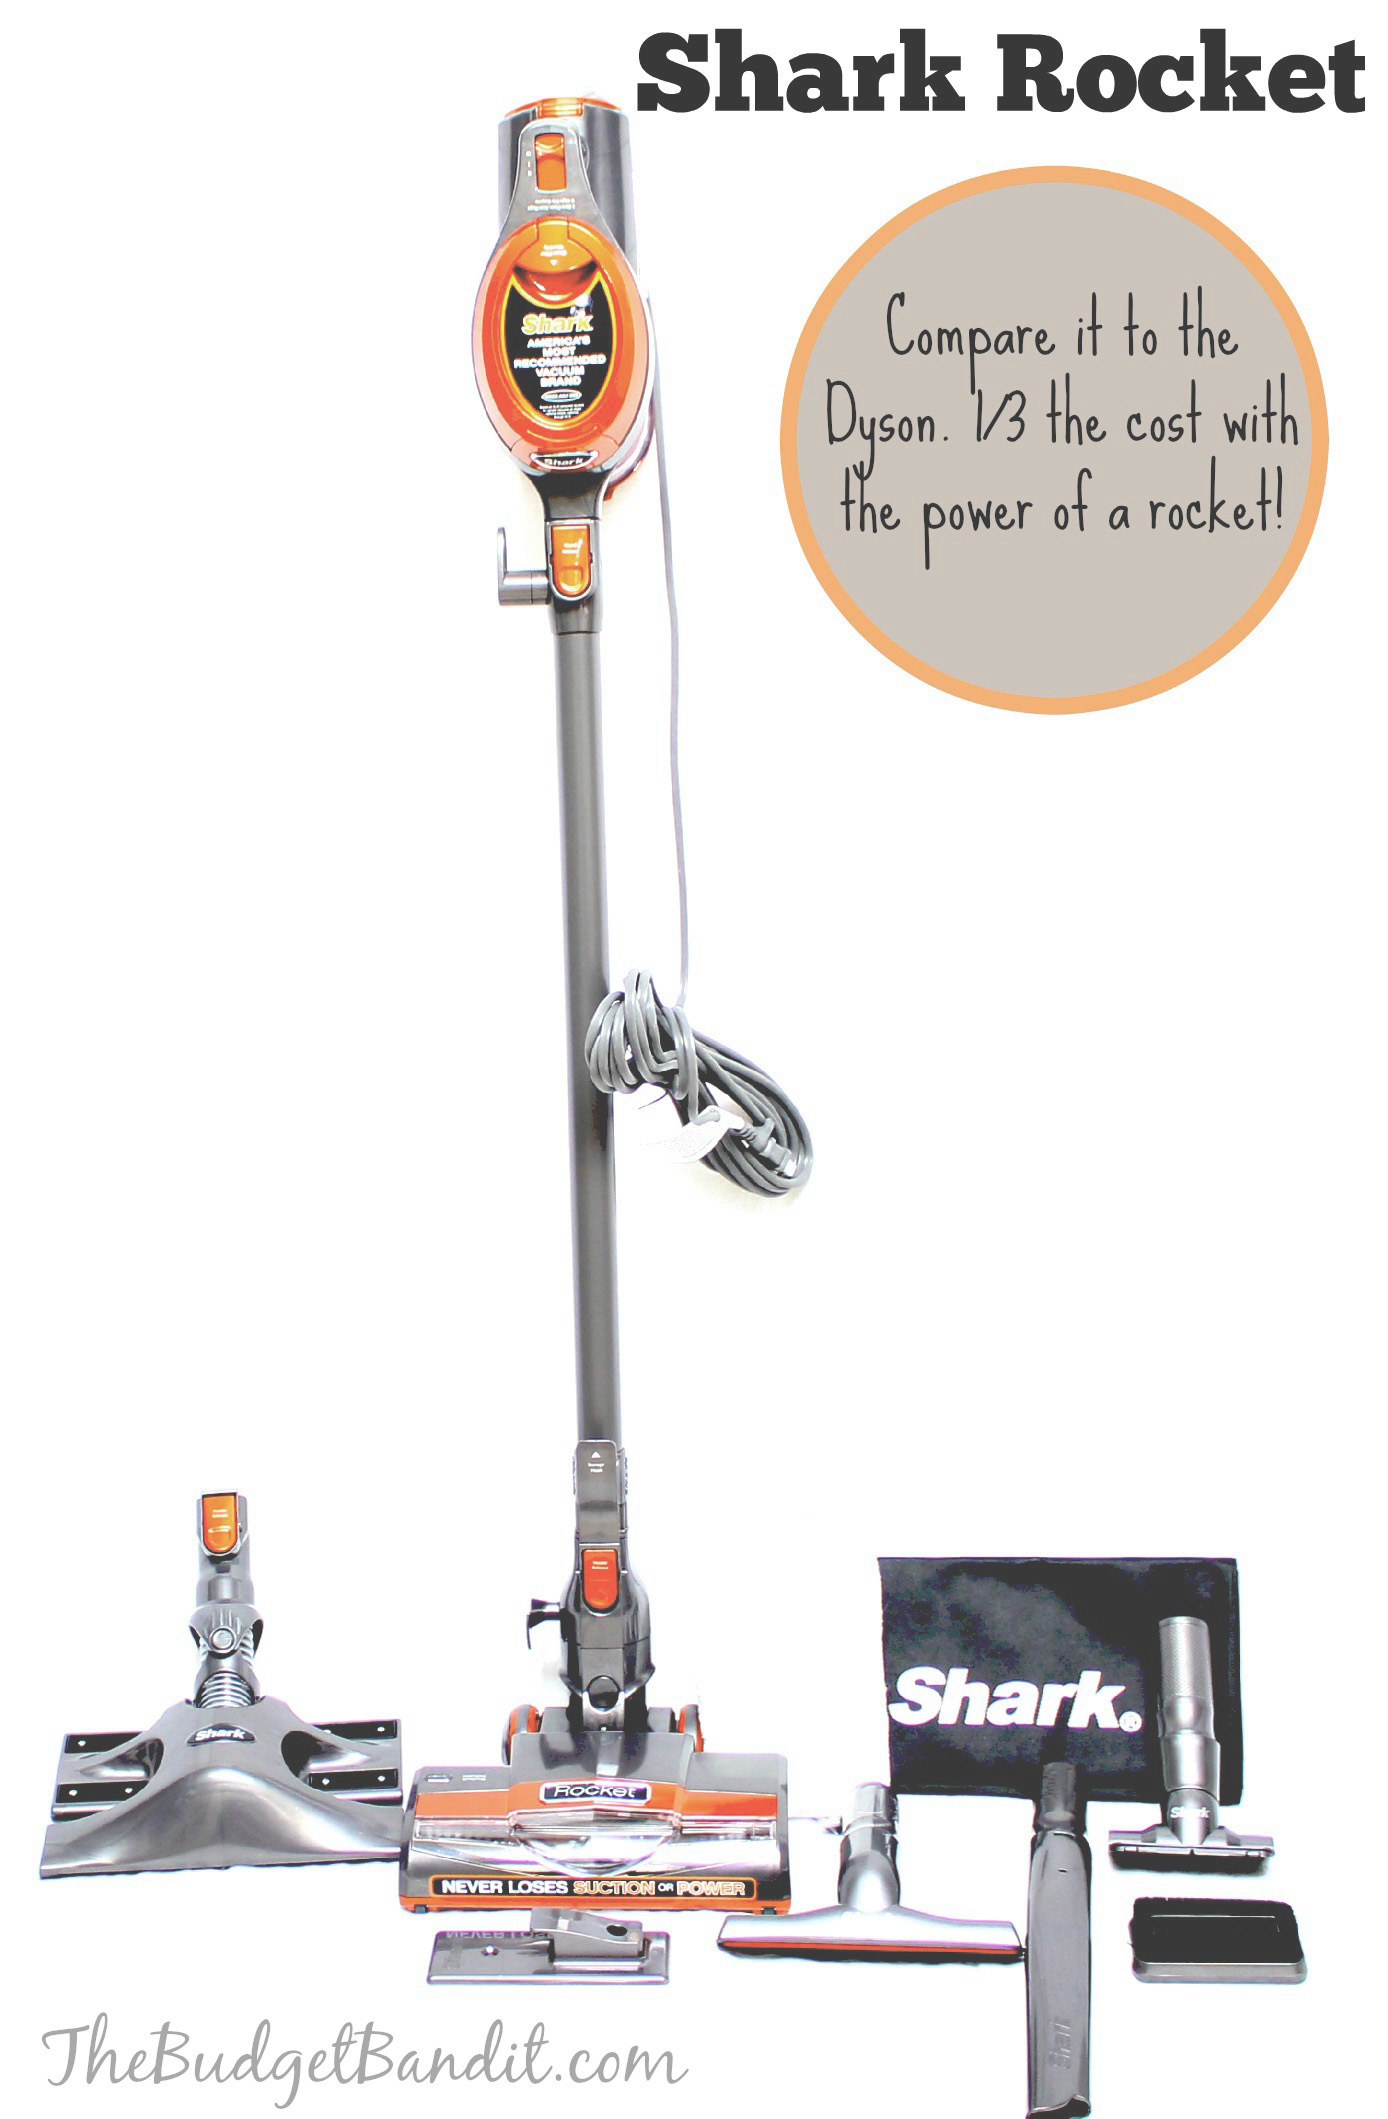 Shark rocket coupon code